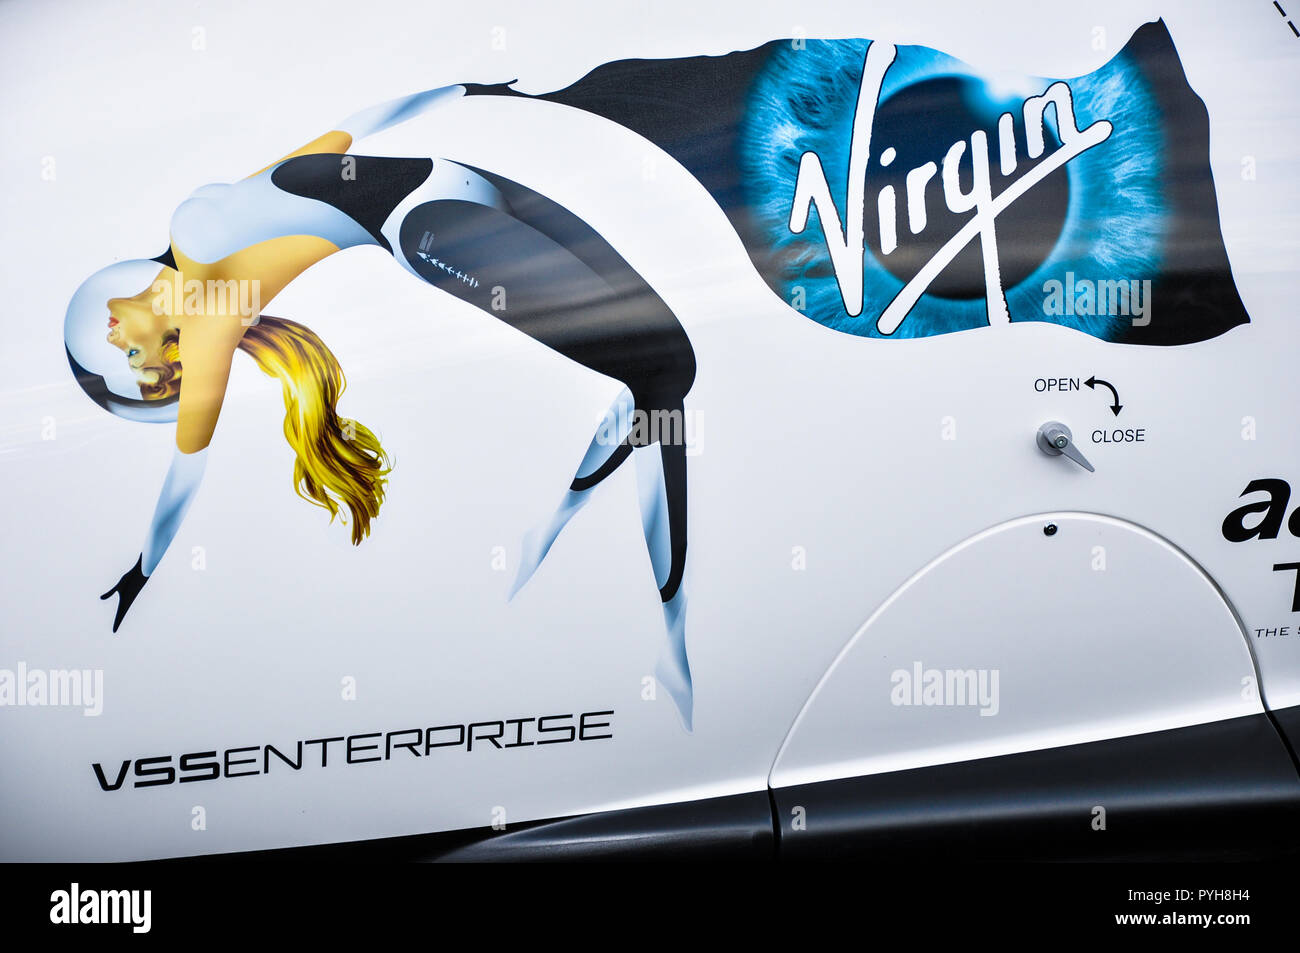 VSS Enterprise was the first SpaceShipTwo (SS2) spaceplane, built by Scaled Composites for Virgin Galactic. Nose art with female figure in space - Stock Image